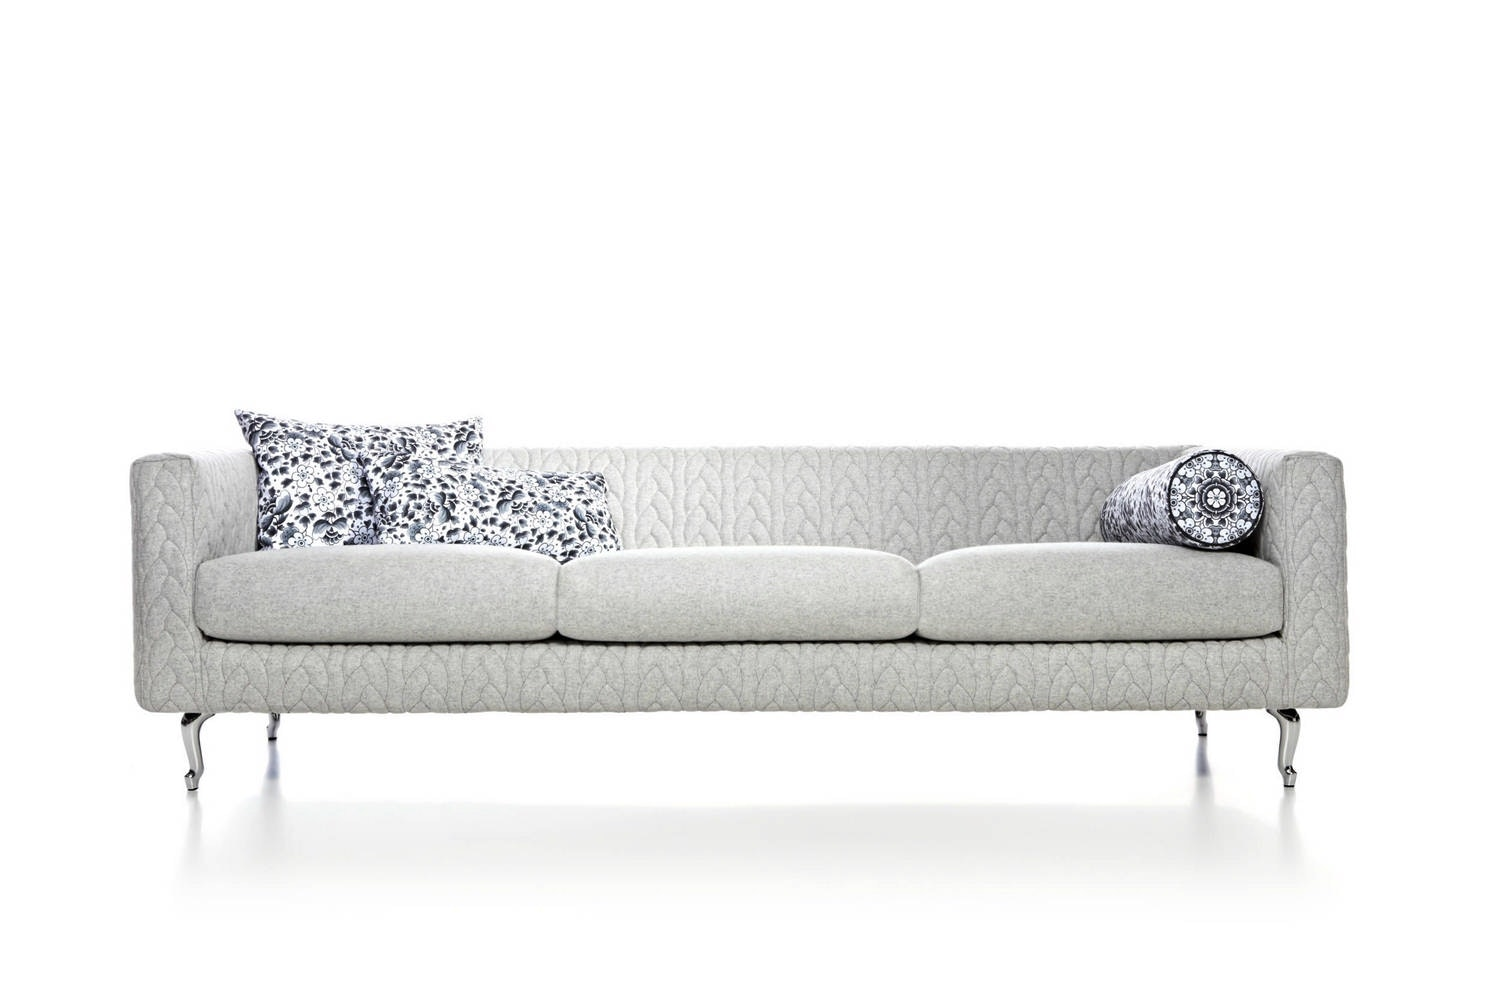 Boutique Delft Grey Jumper Sofa by Marcel Wanders for Moooi